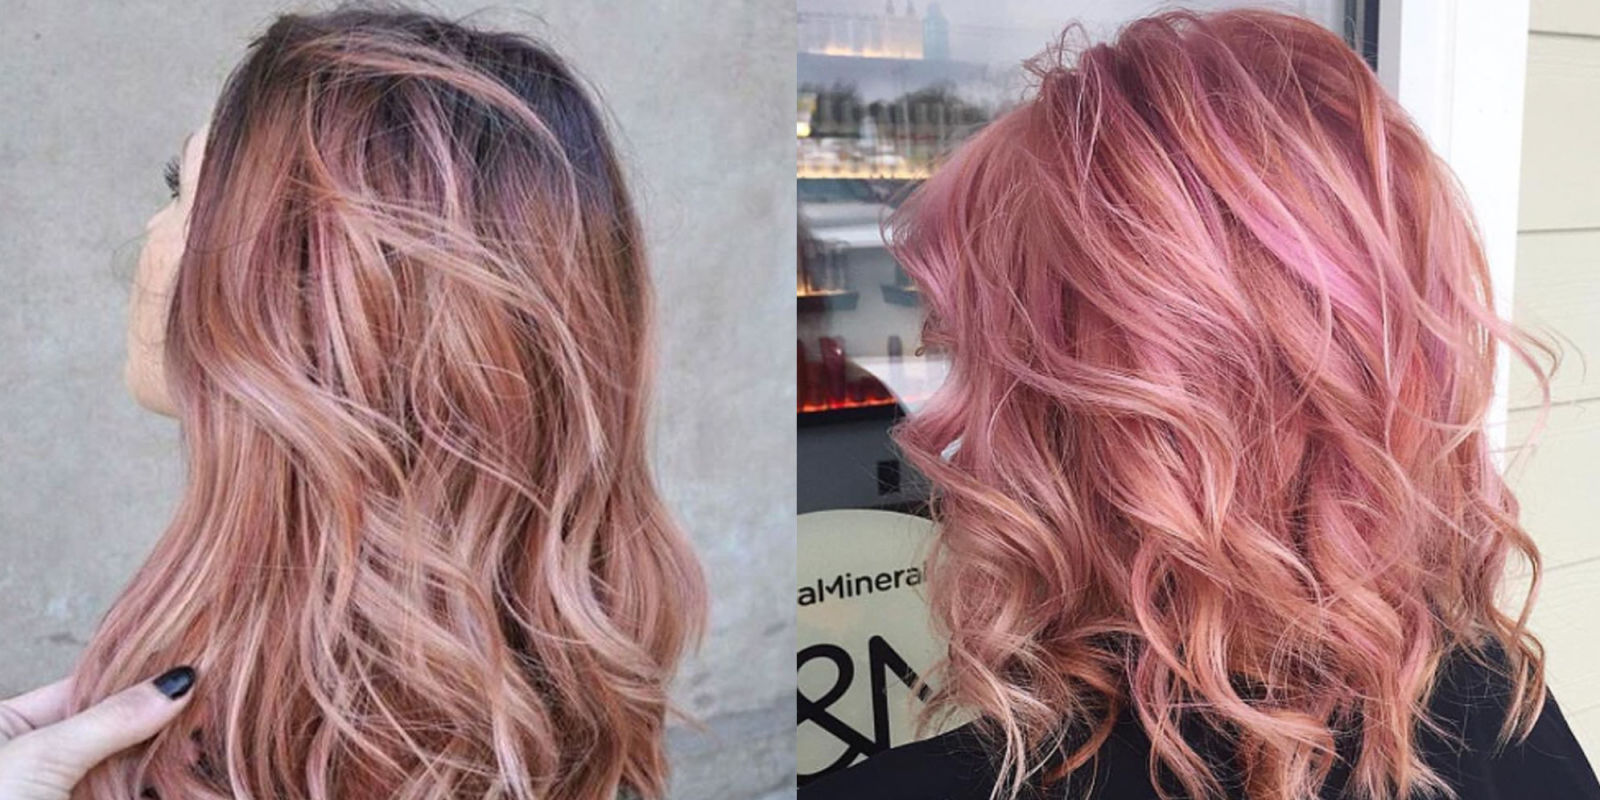 Rose Gold Hair Is The Latest Hair Color Trend To Try